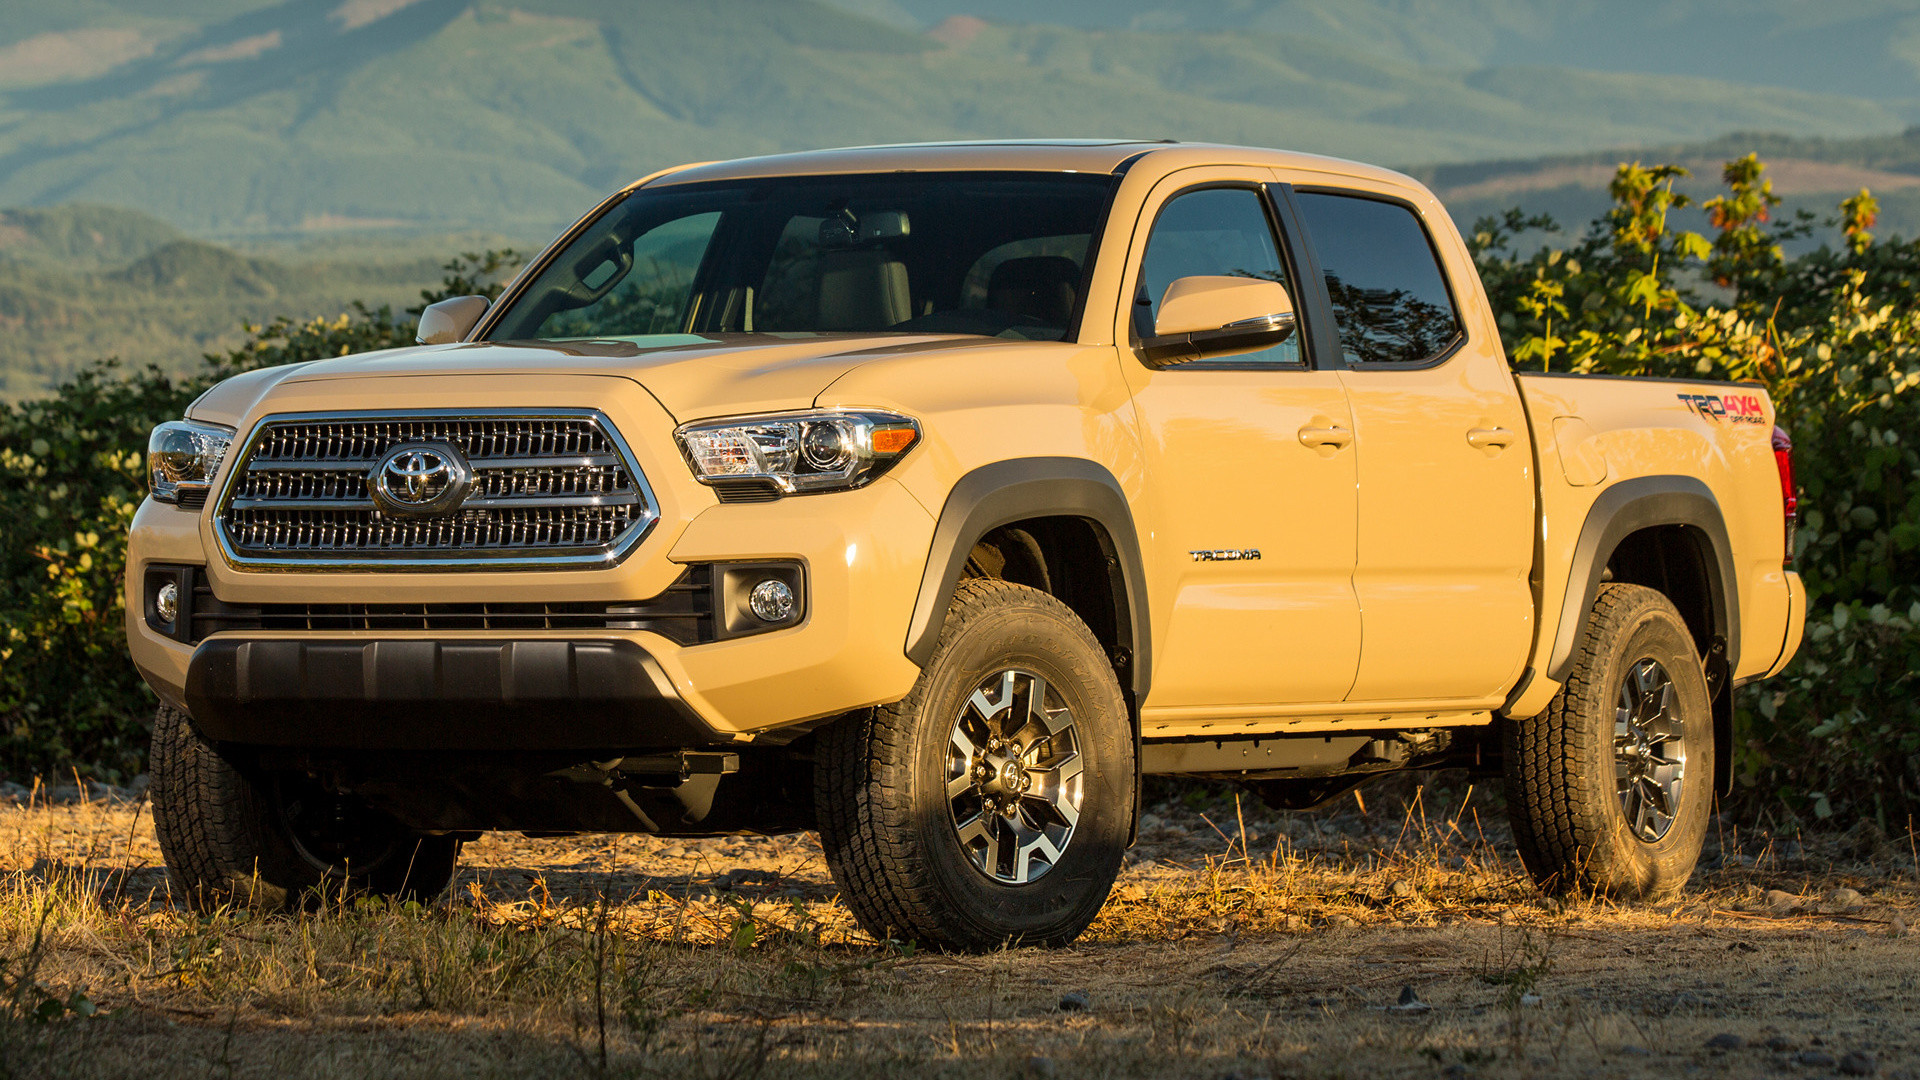 1920x1080 Toyota Tacoma TRD Off-Road Double Cab (2016) Wallpapers .